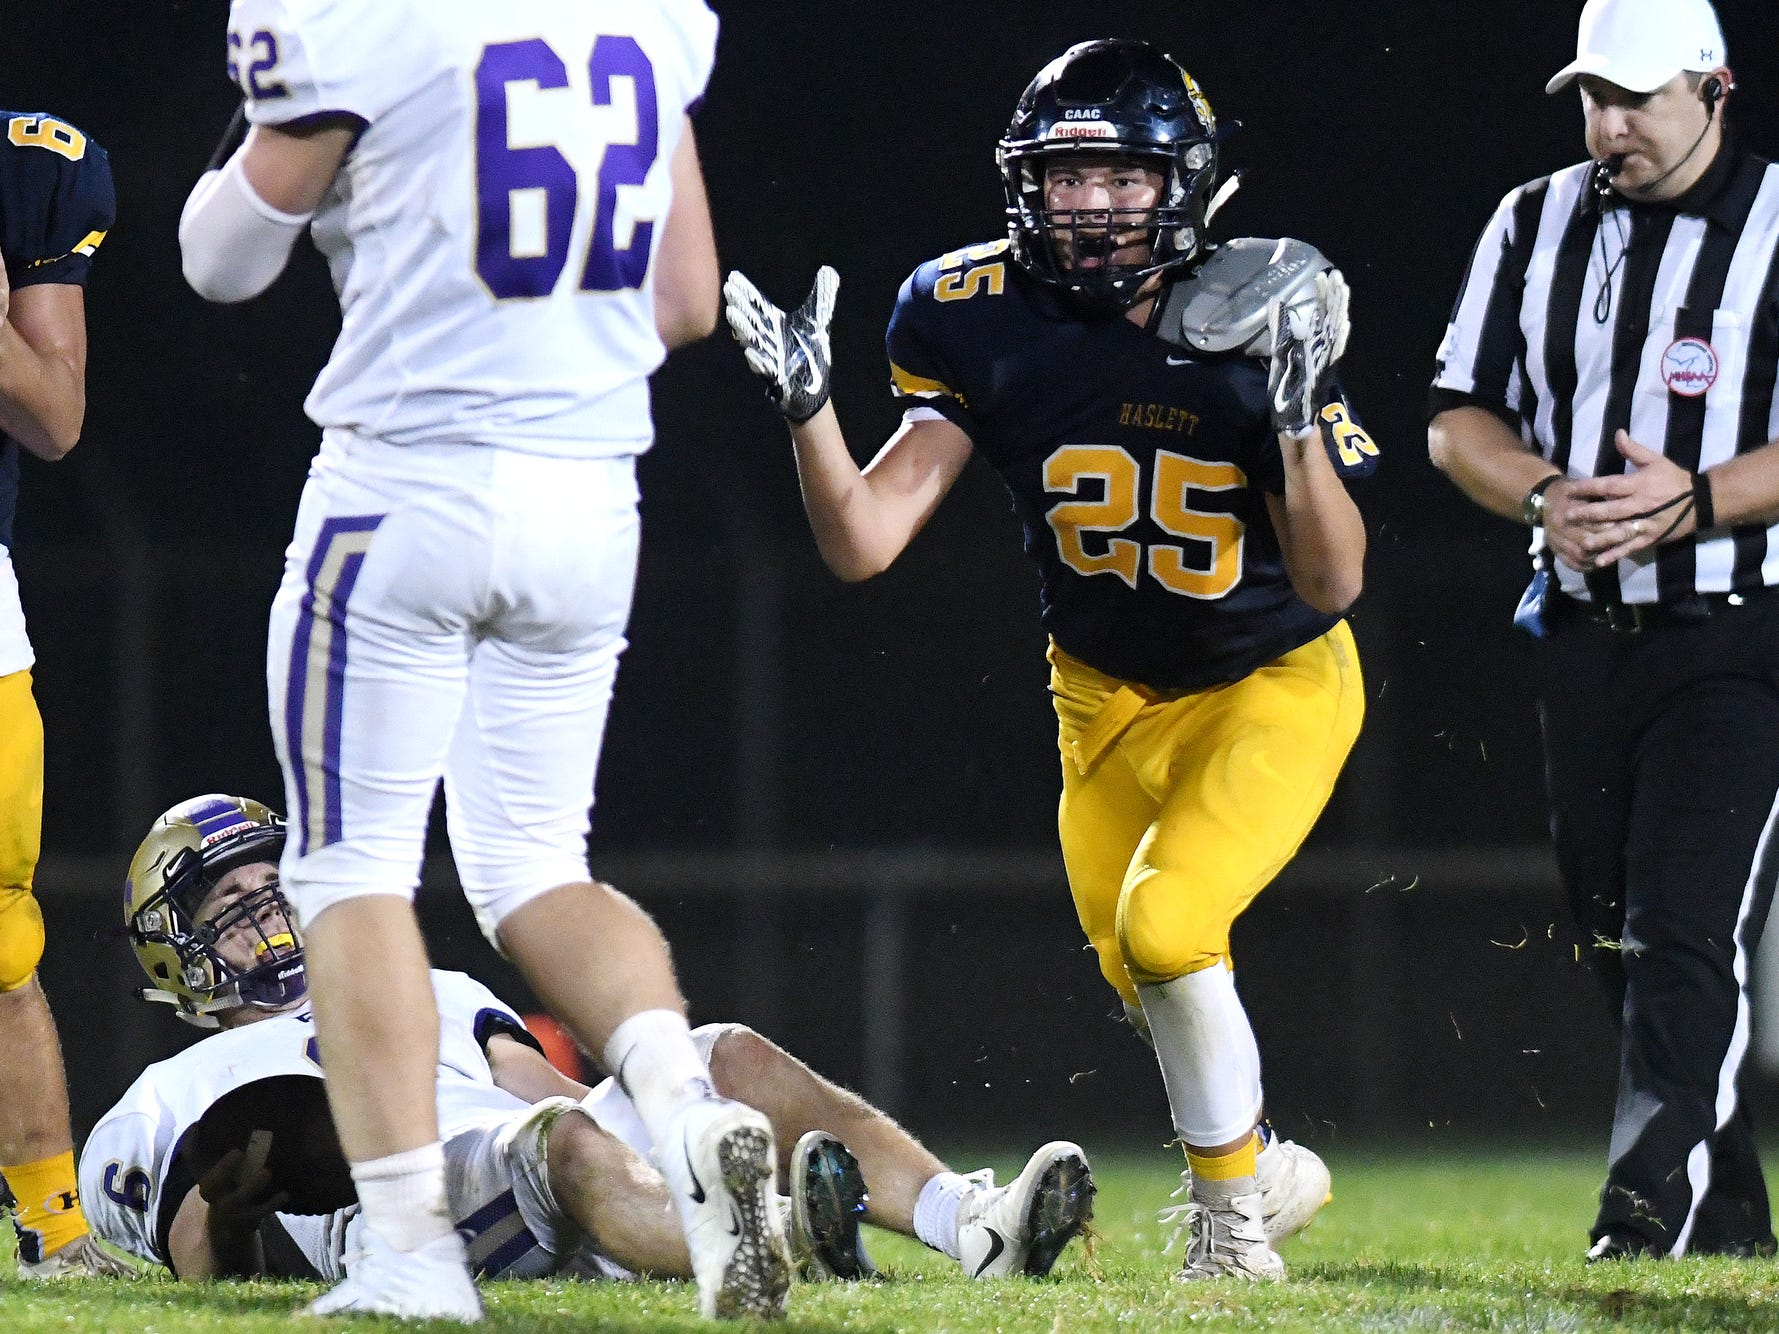 Haslett's Chance Cook celebrates after recording a sack during the third quarter on Friday, Sept. 14, 2018, at Haslett High School.